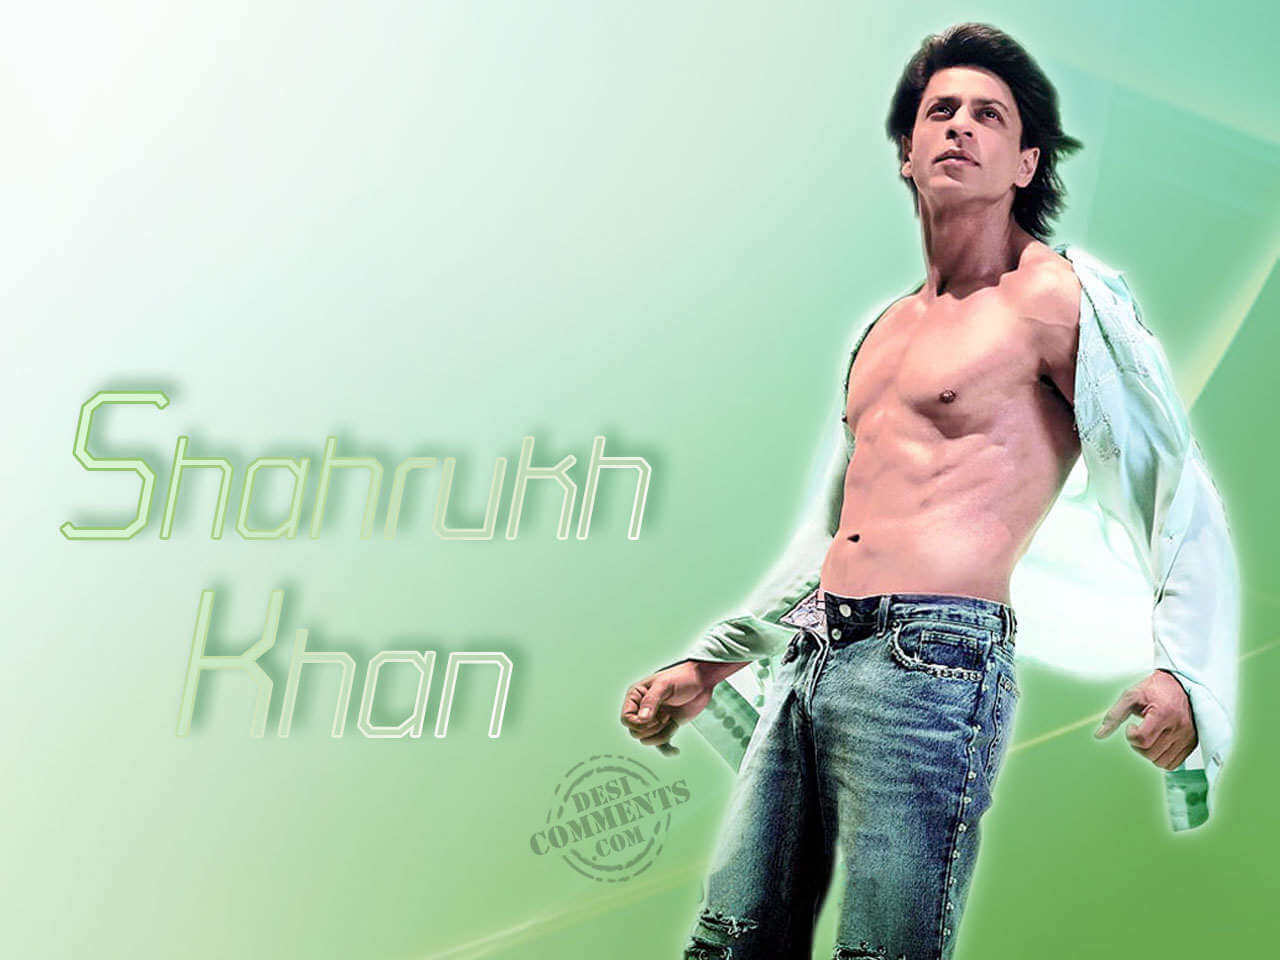 Shahrukh Khan Photo(images), Wife, Age, Son, Net Worth, Height, Daughter, Birth Date, Family, Biography, Children, Hairstyle, Education, Awards, Details, Instagram, Wiki. Twitter, Facebook, Im ( (50)